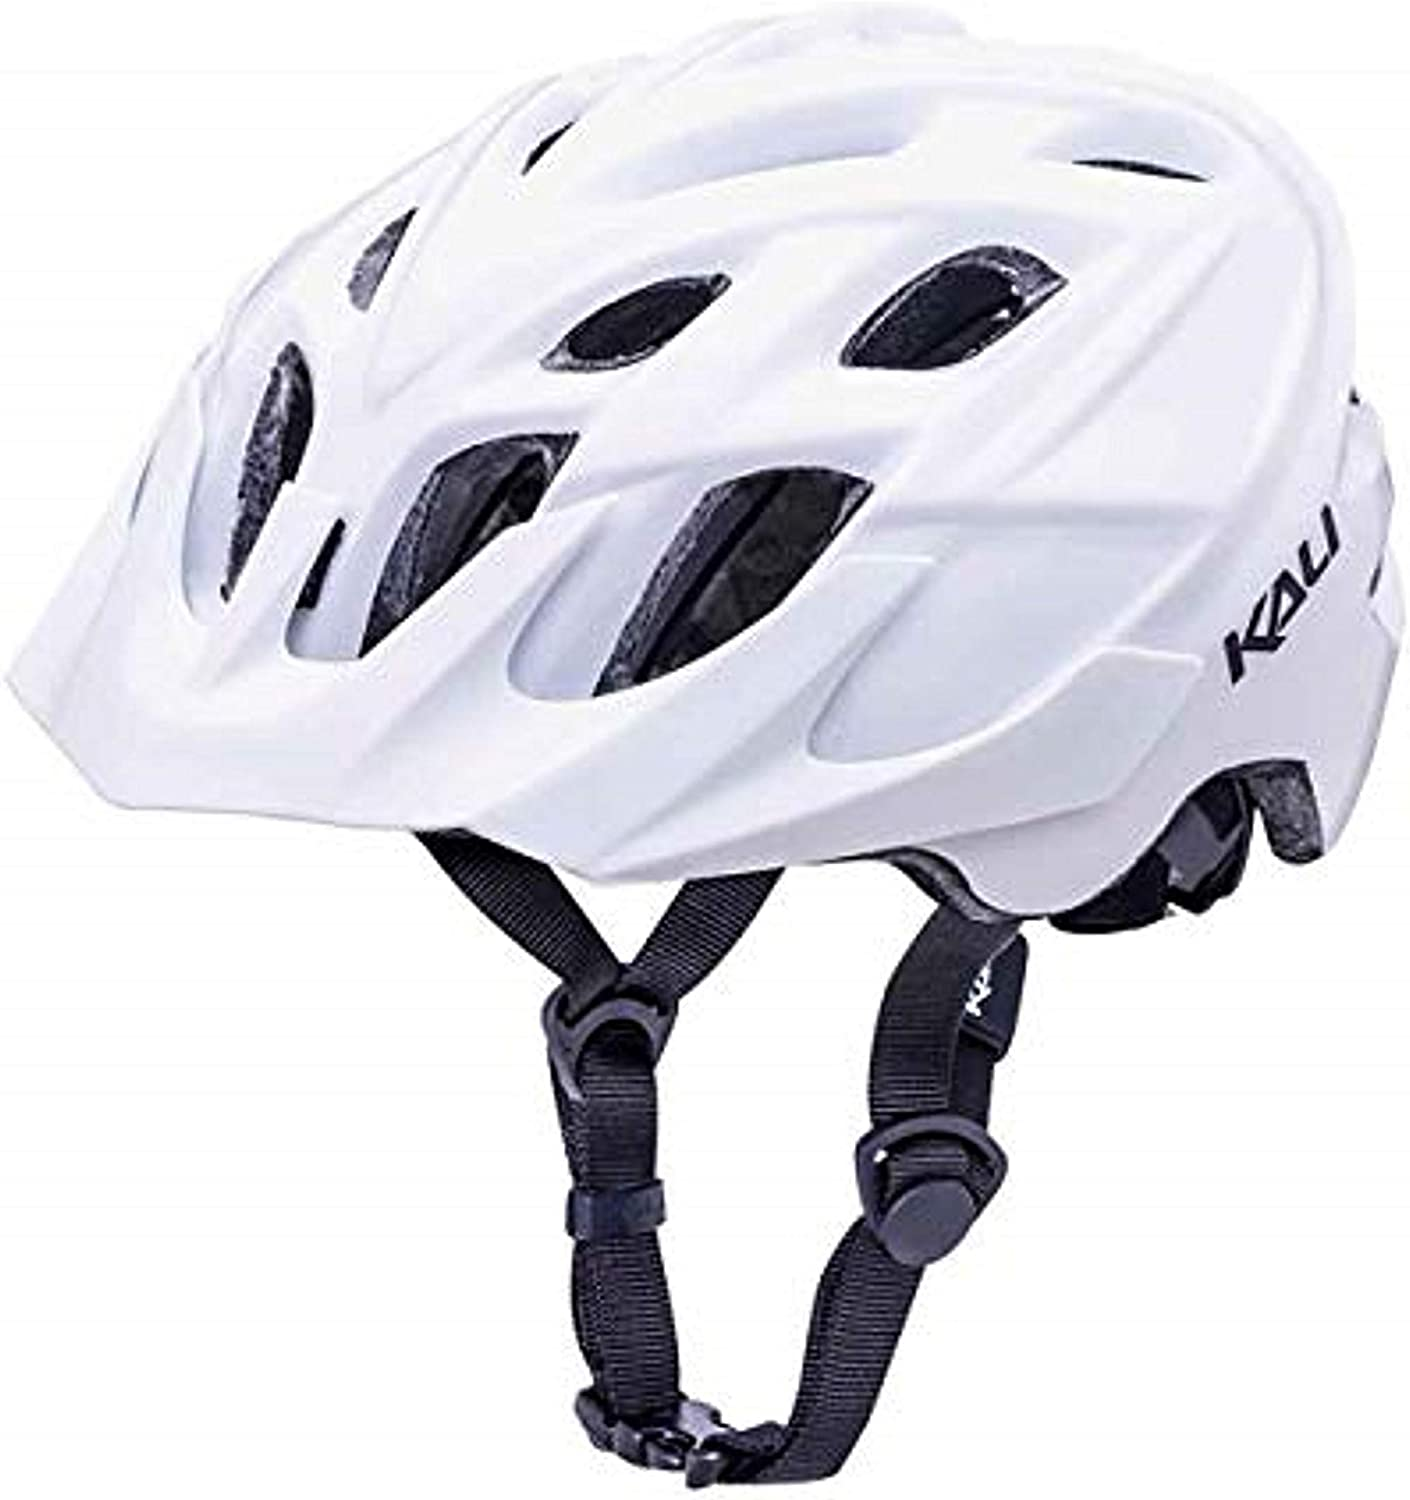 Kali Protectives Chakra Solo Half Size Whi Solid Cycling In Popular shop is the lowest price challenge a popularity Helmet